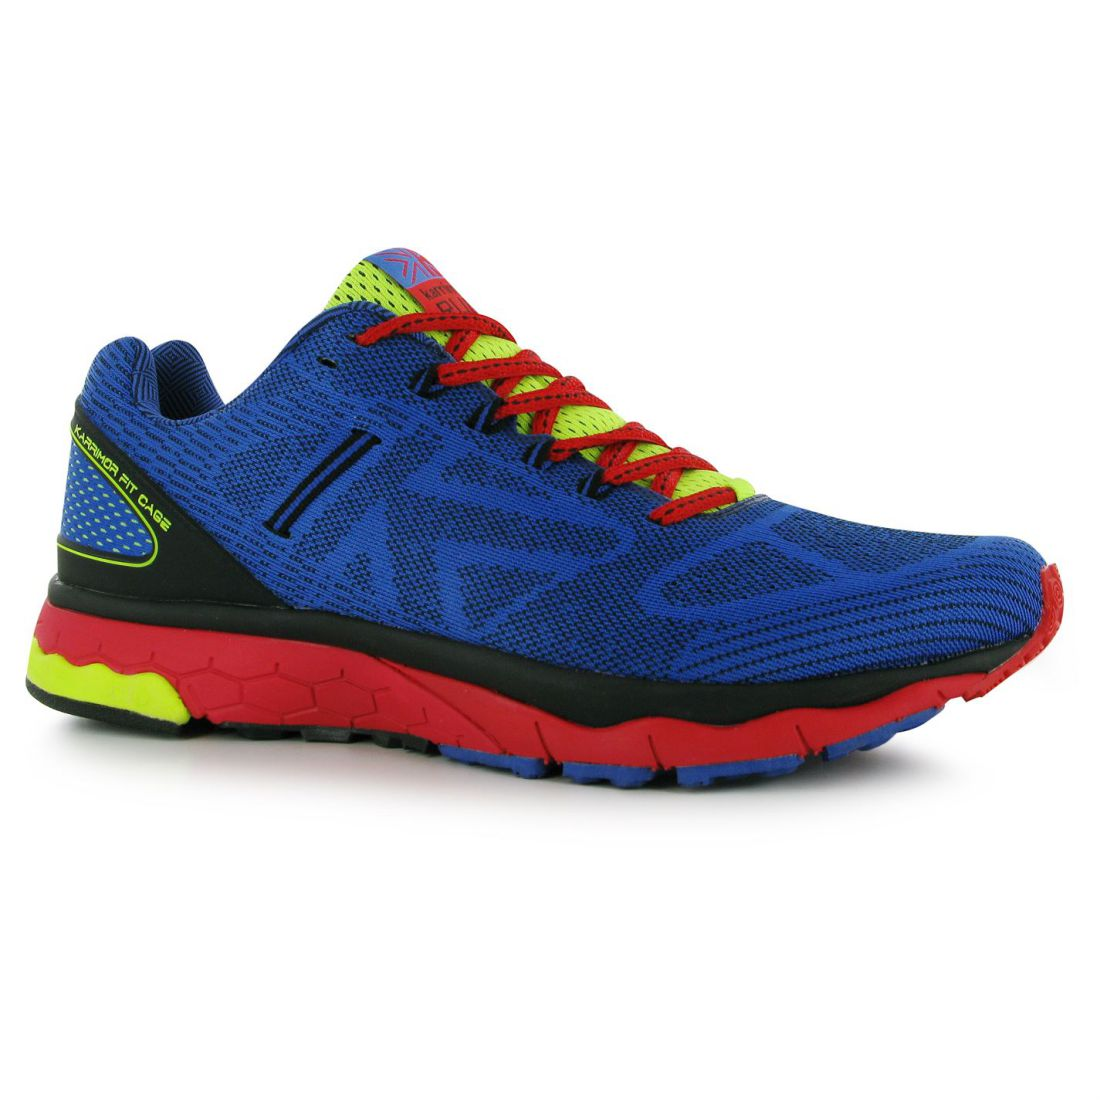 sale retailer eb2f9 11c24 Details about Karrimor Mens D30 Excel 2 Running Shoes Sports Lace Up  Trainers Runners